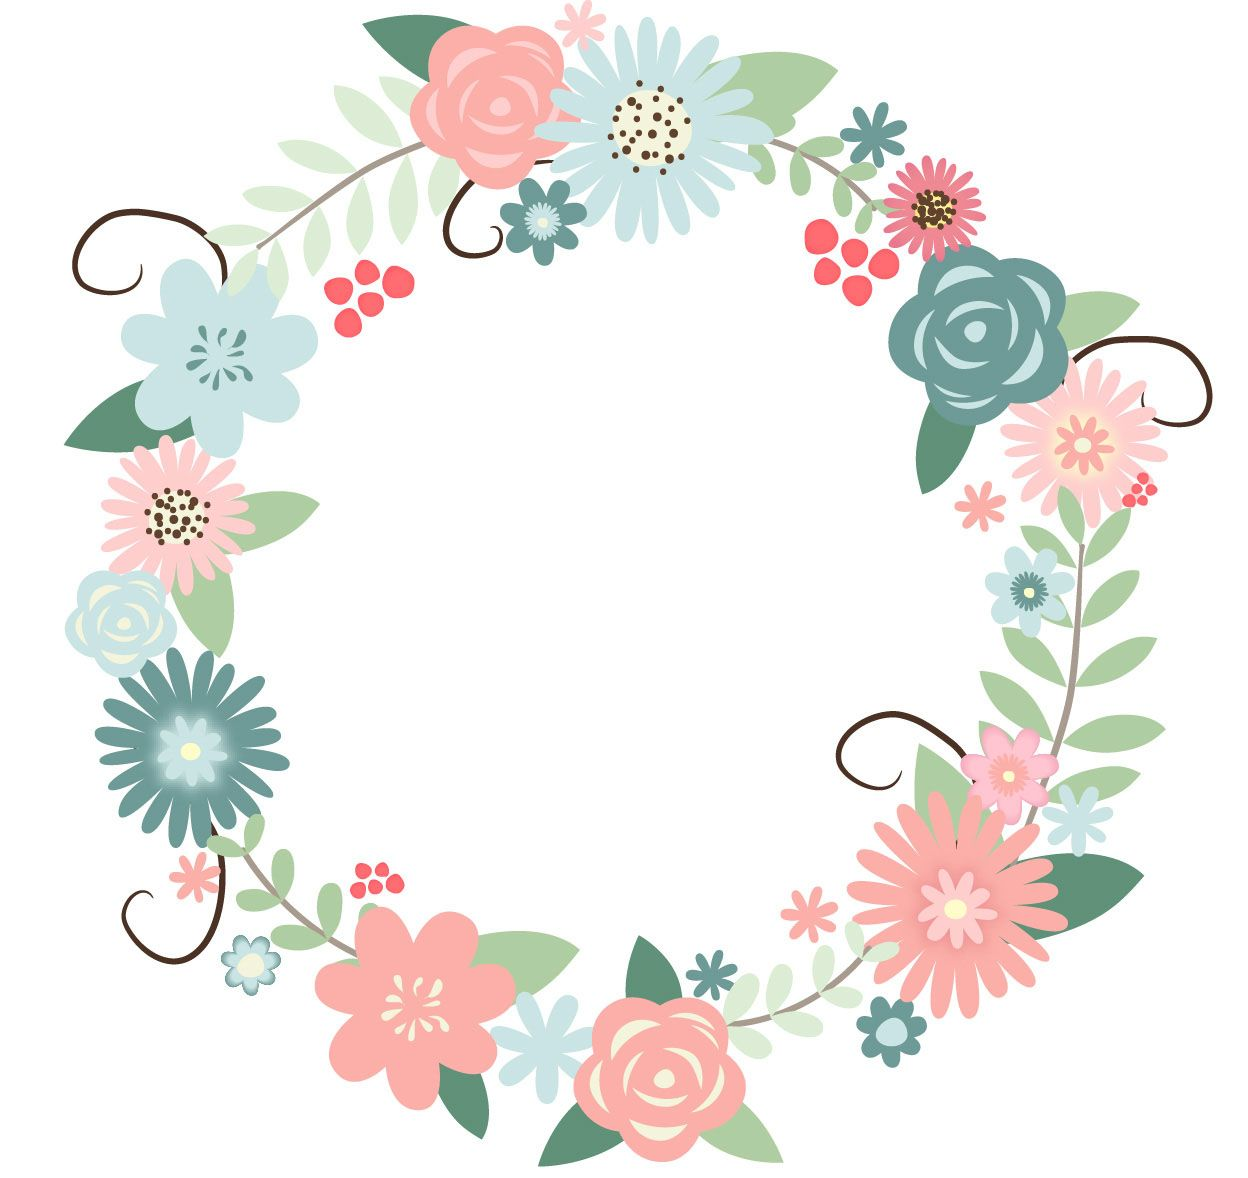 recolored floral wreath..